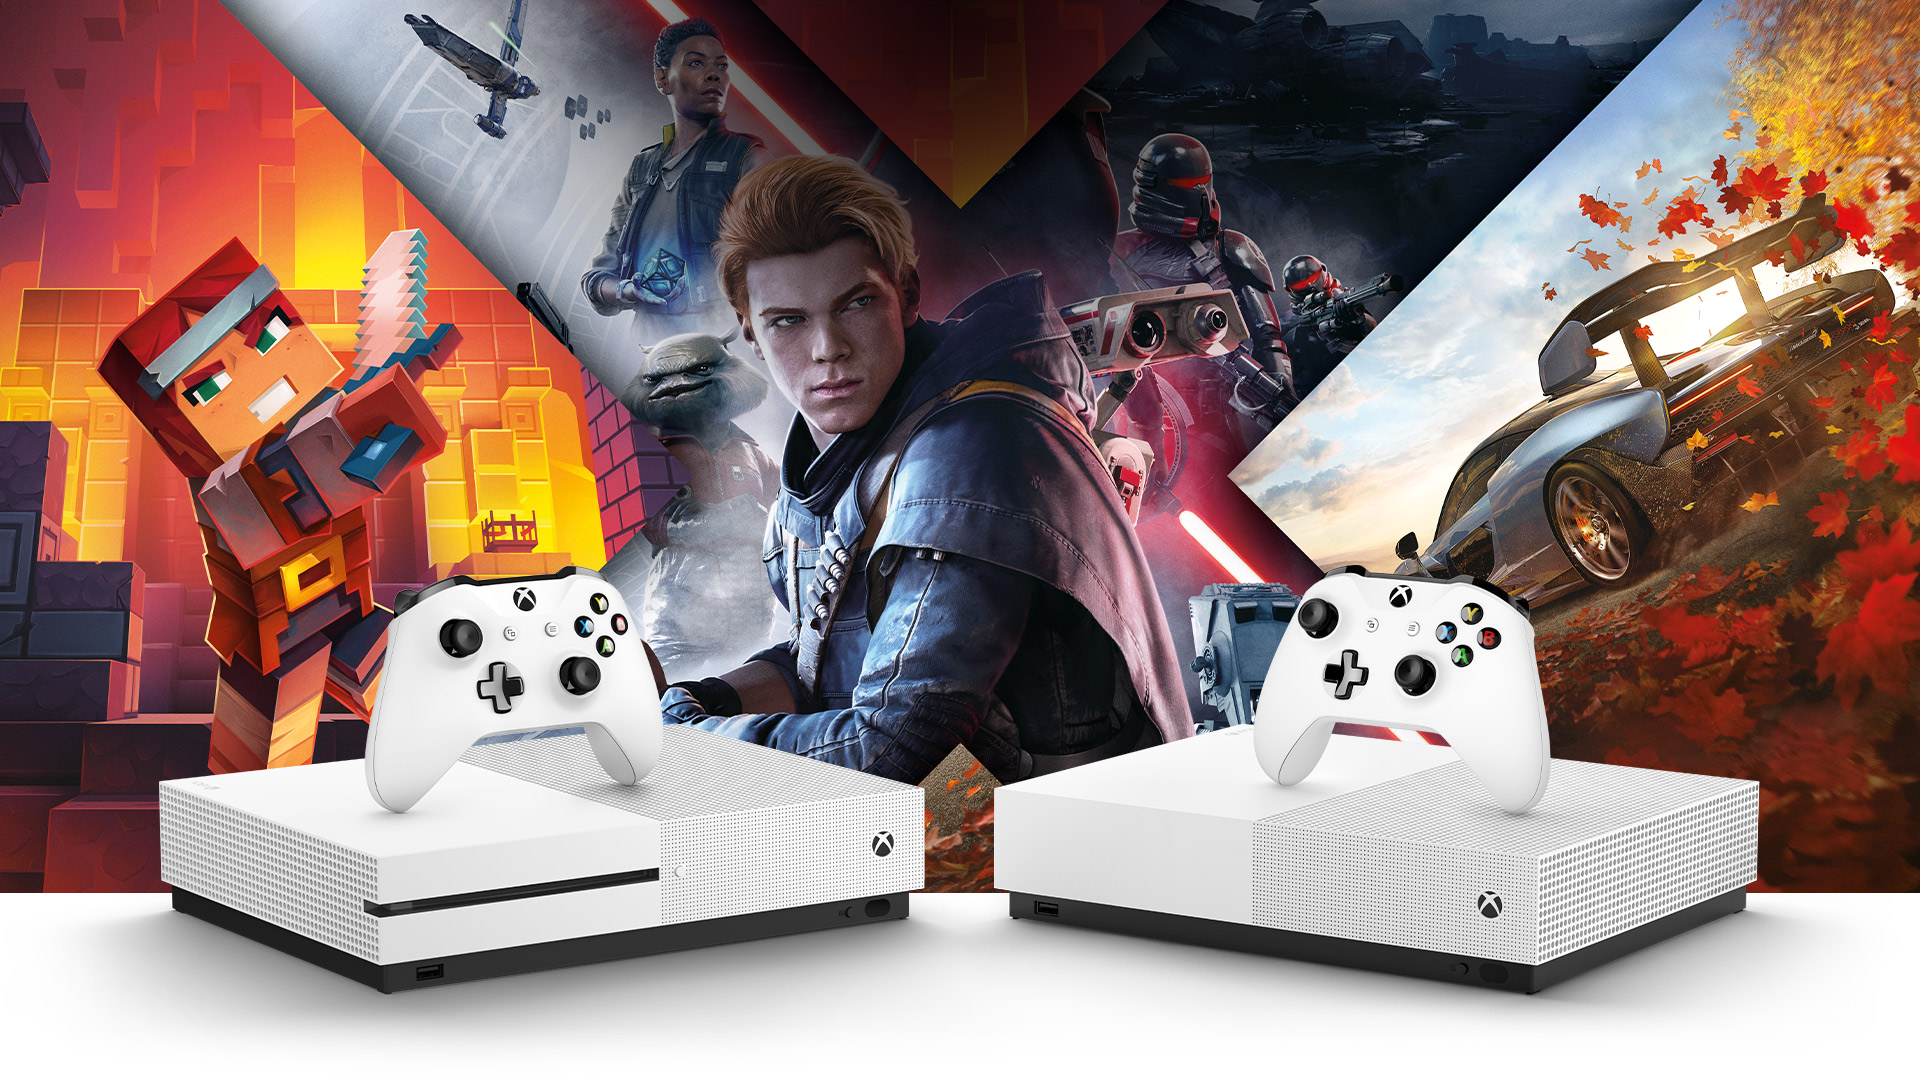 Vista frontal de Xbox One S y Xbox One S All-Digital Edition rodeadas de ilustraciones de Minecraft, Forza Horizon 4 y Star Wars Jedi: Fallen Order